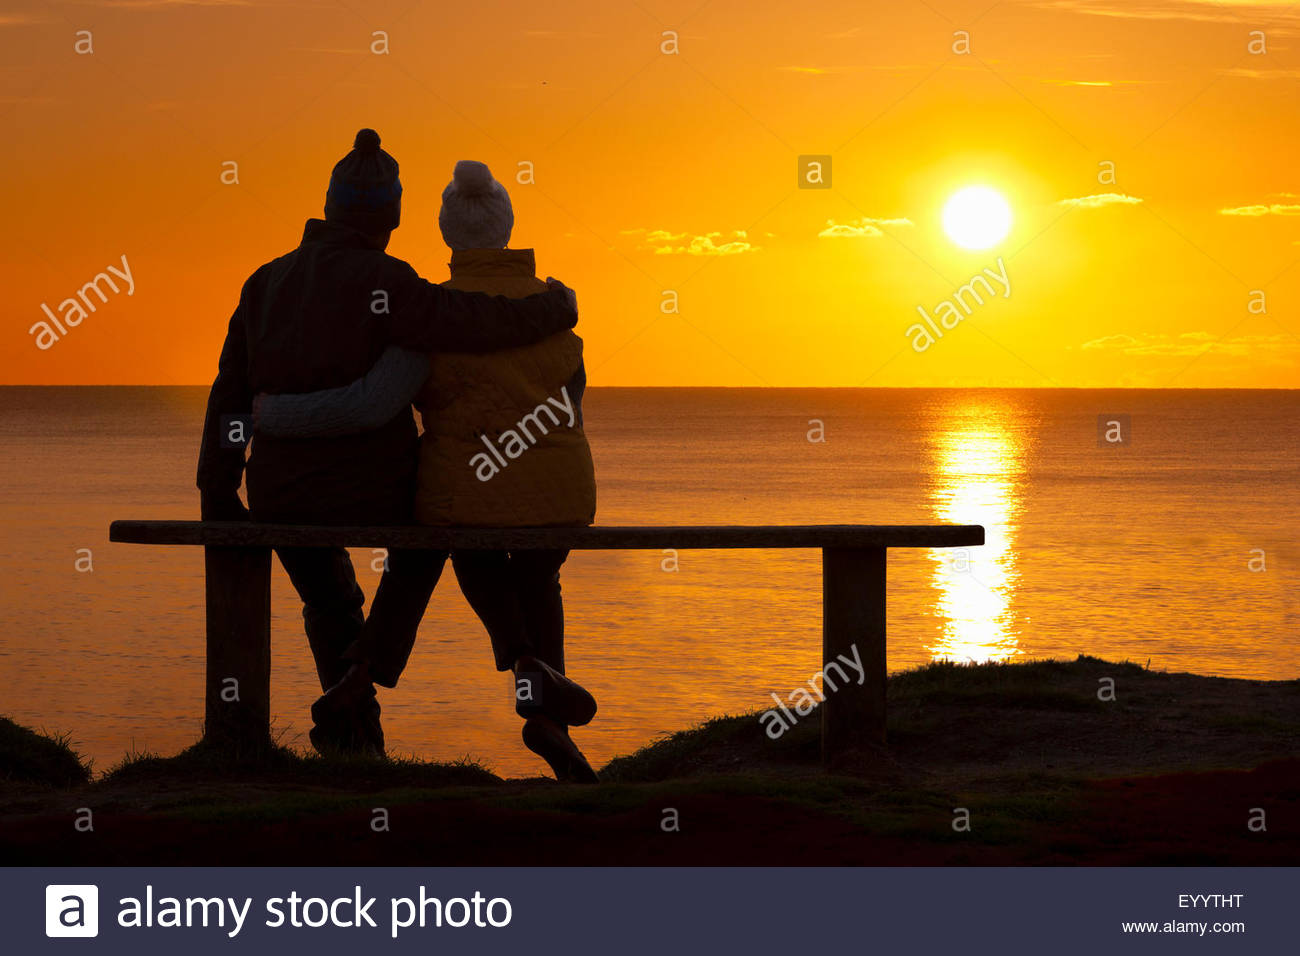 Silhouette of couple, sitting on bench with arms round each other, against sunset over the ocean - Stock Image